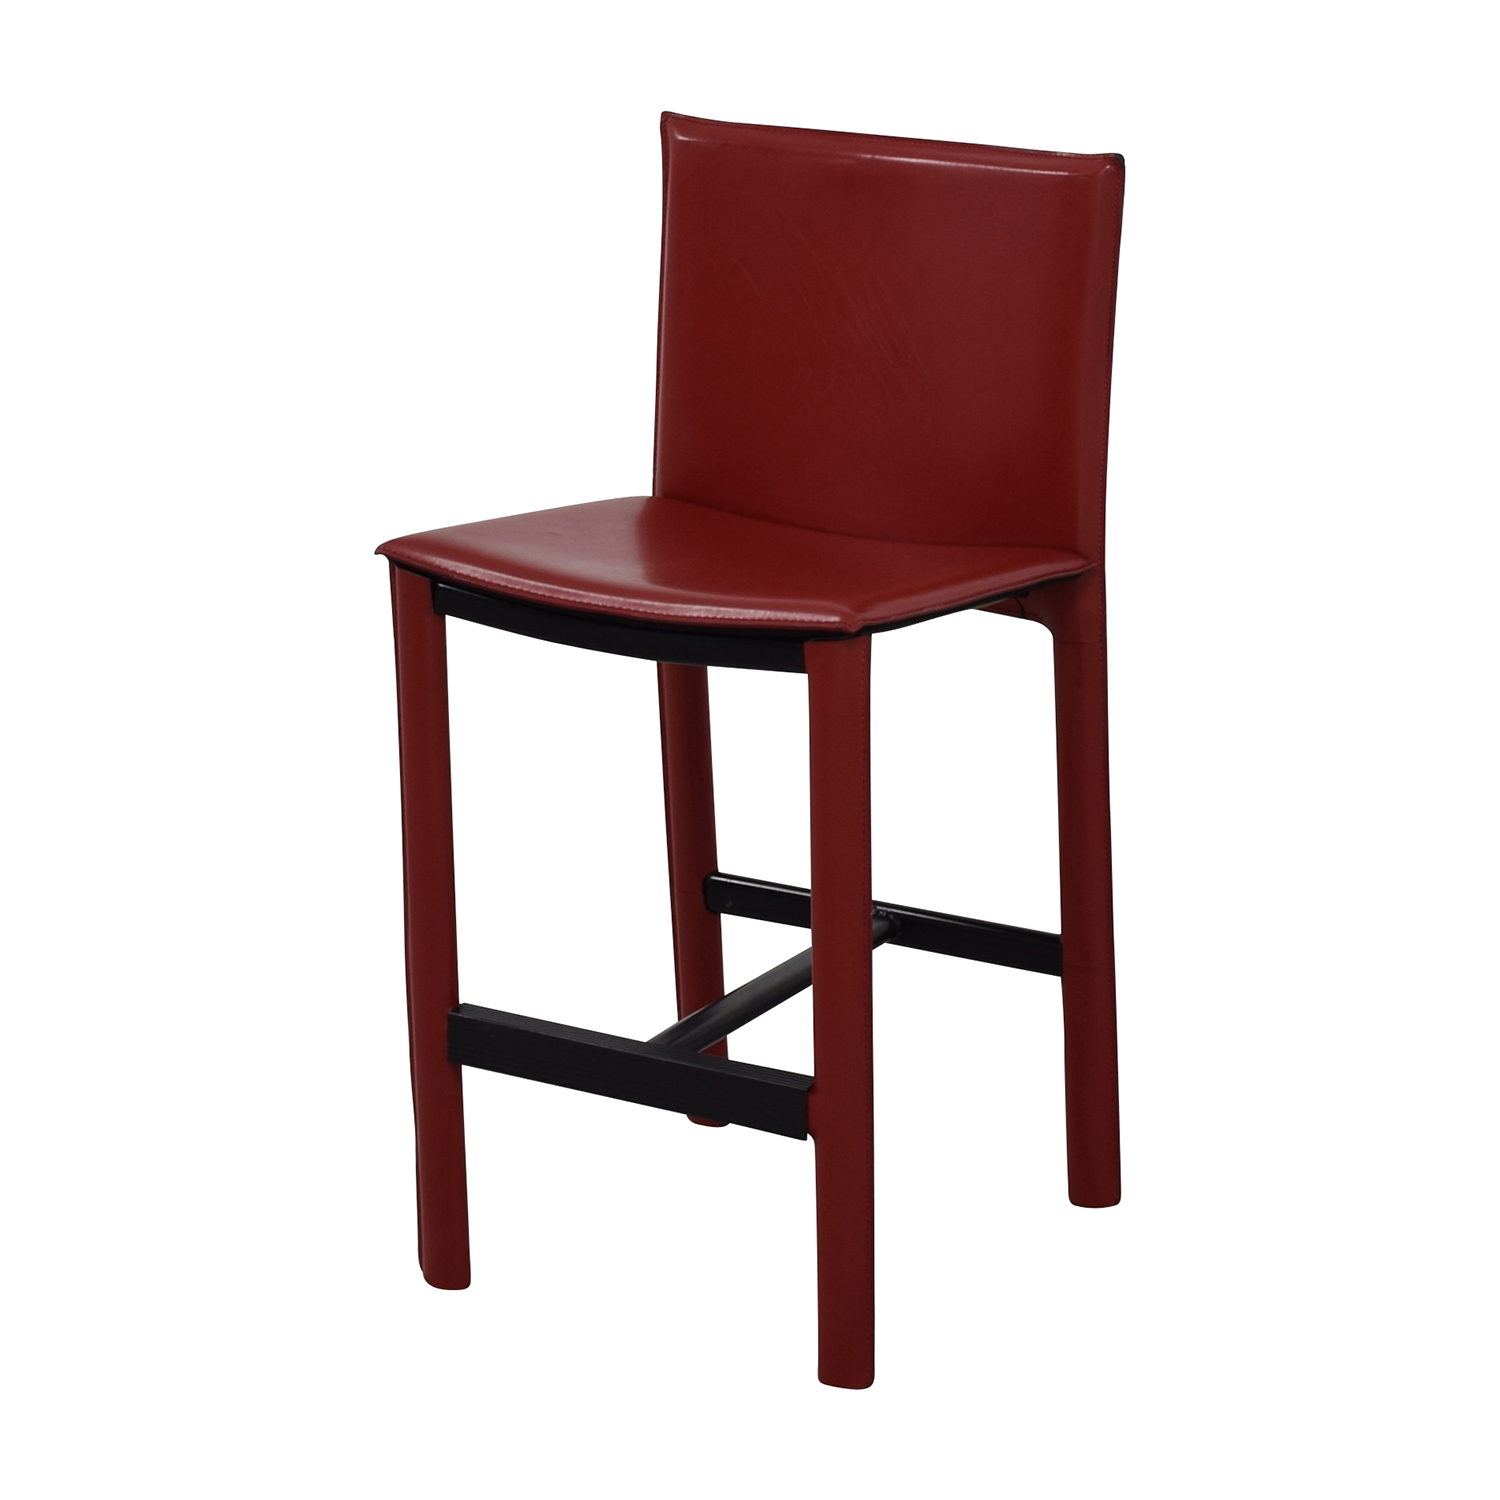 90 off room board room board sava bar stool in red leather chairs. Black Bedroom Furniture Sets. Home Design Ideas